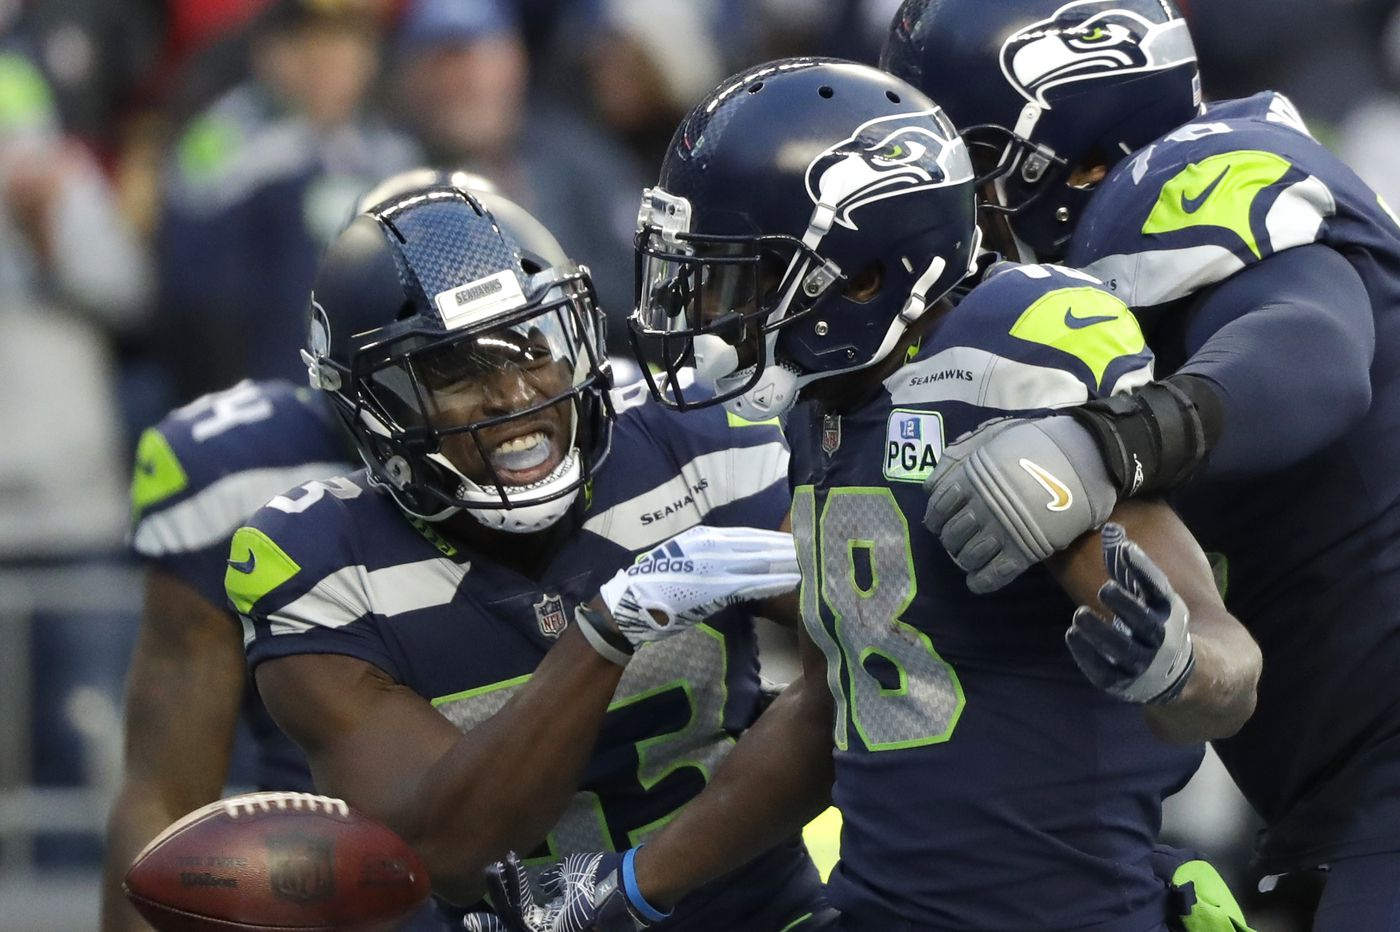 Seattle Times: Seahawks starting tackle Duane Brown and two others won't play against Eagles